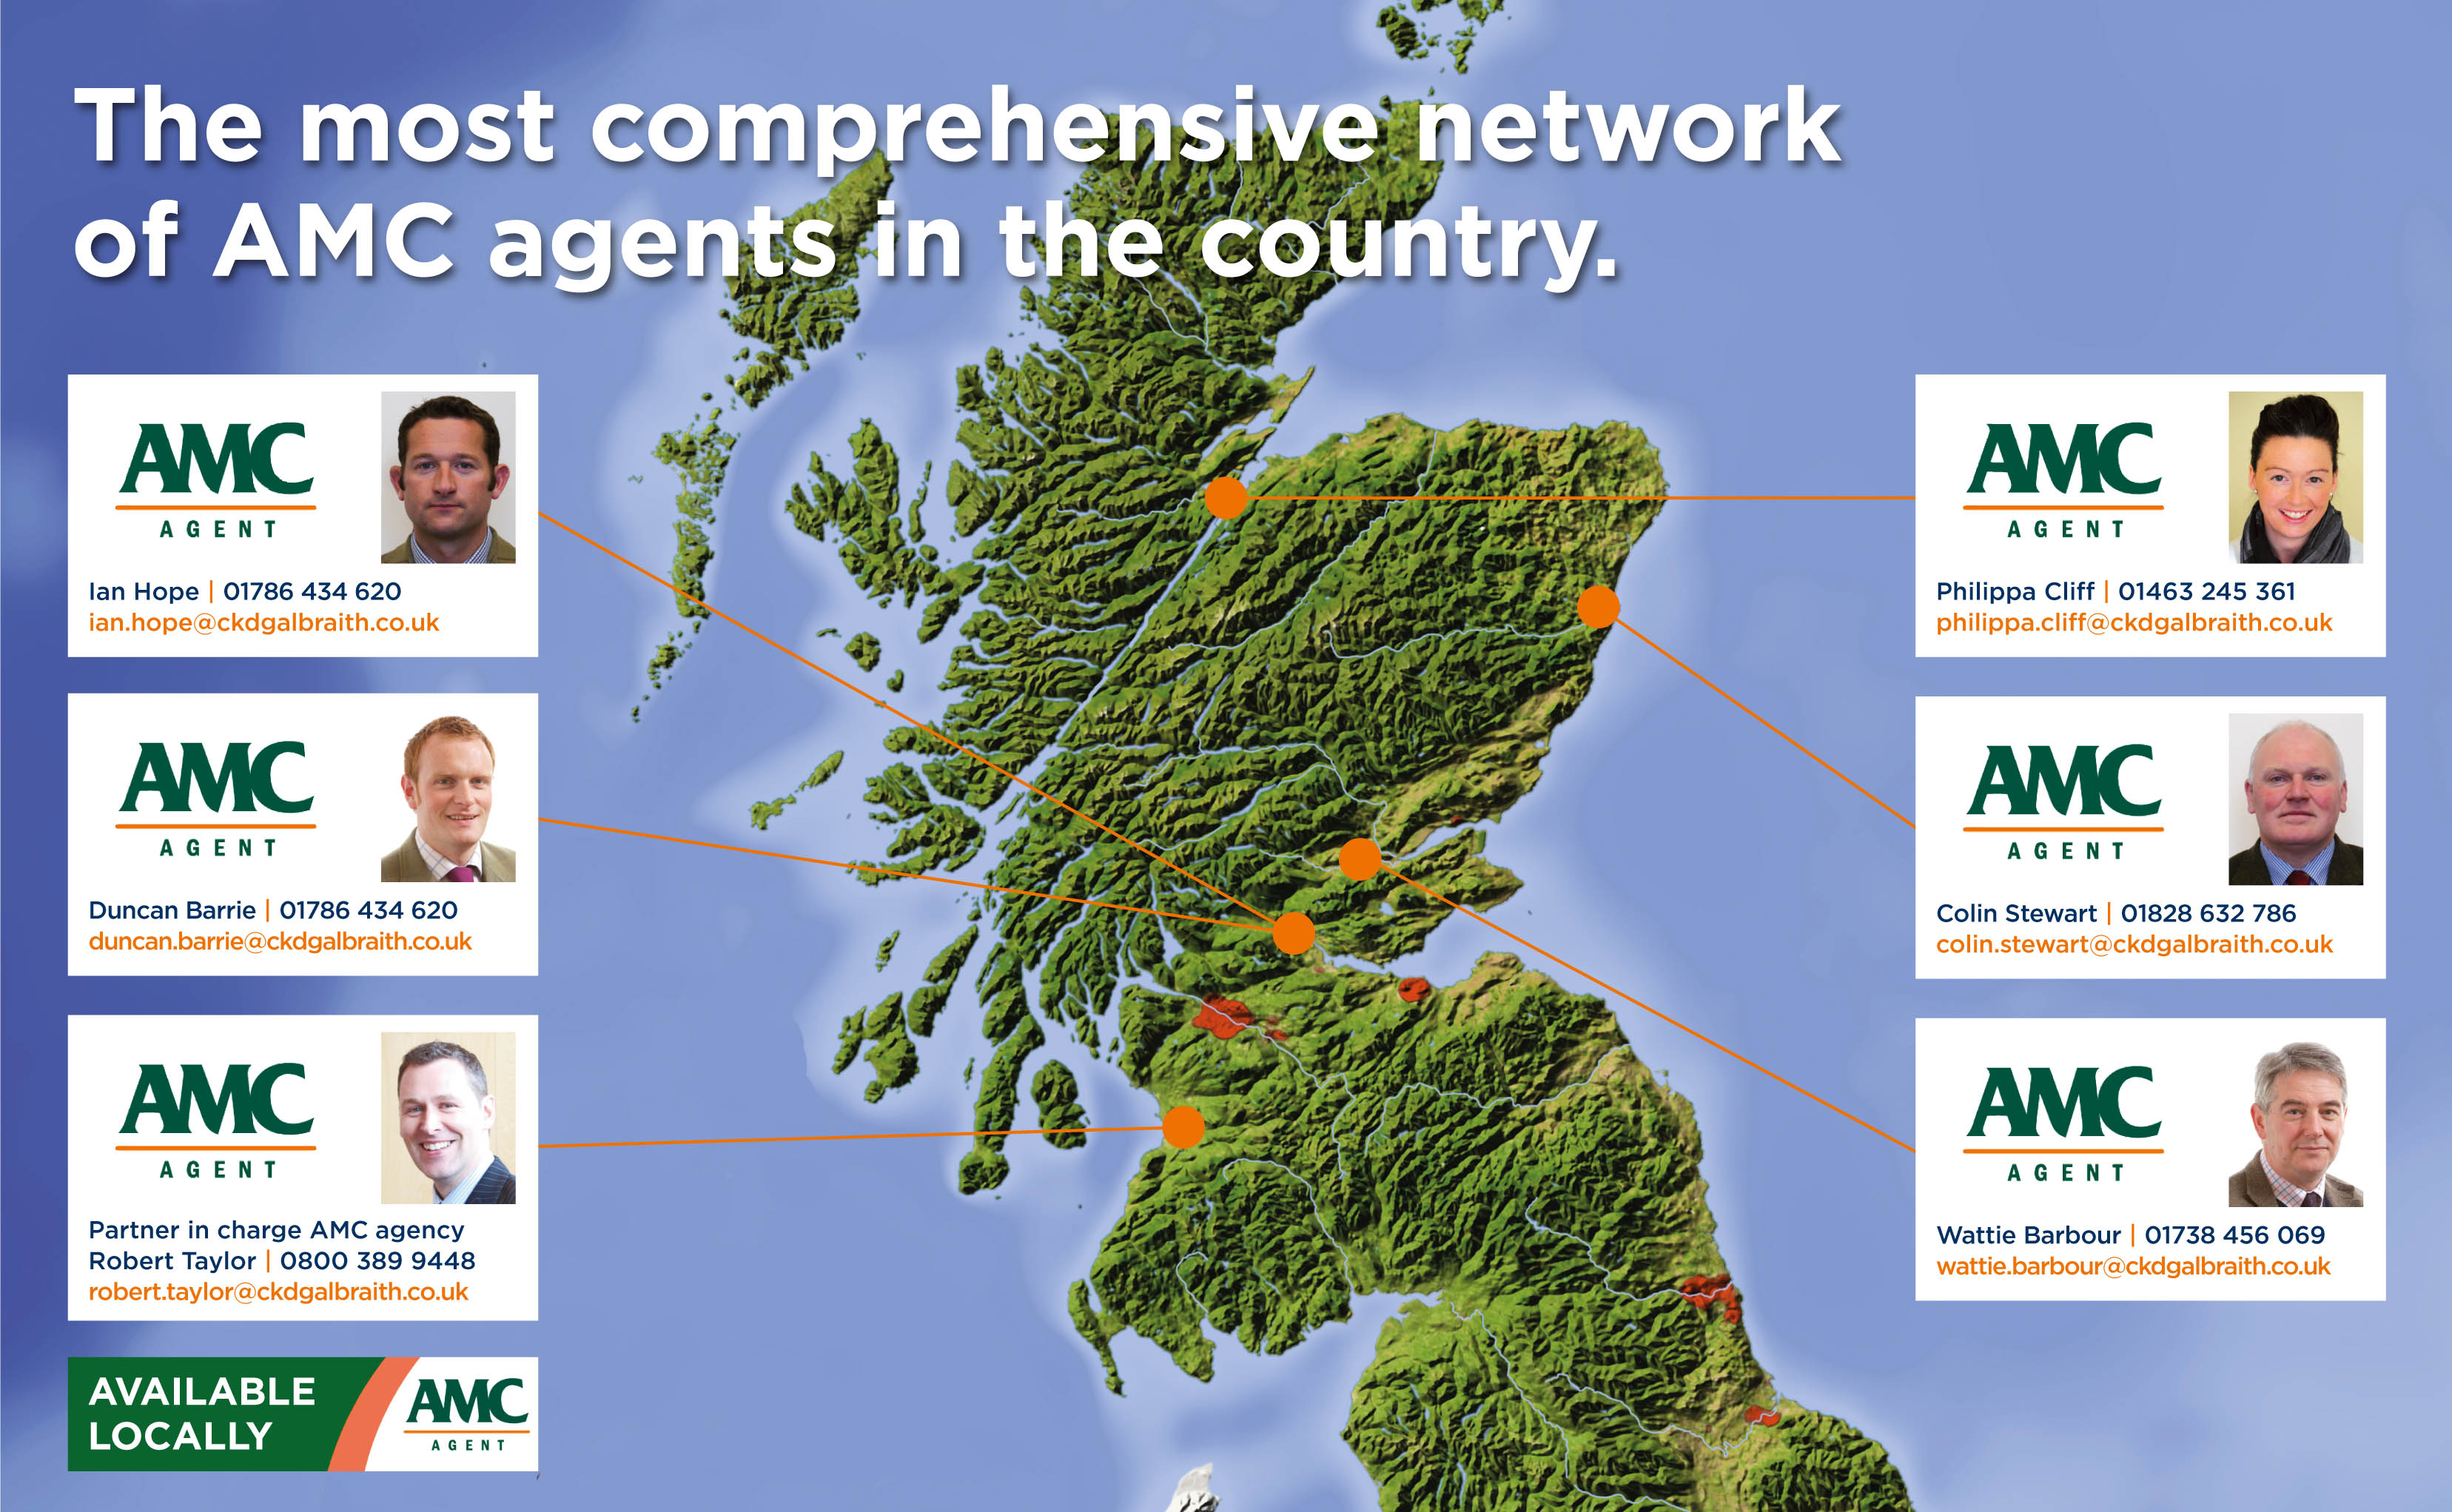 The most comprehensive network of AMC agents in the country